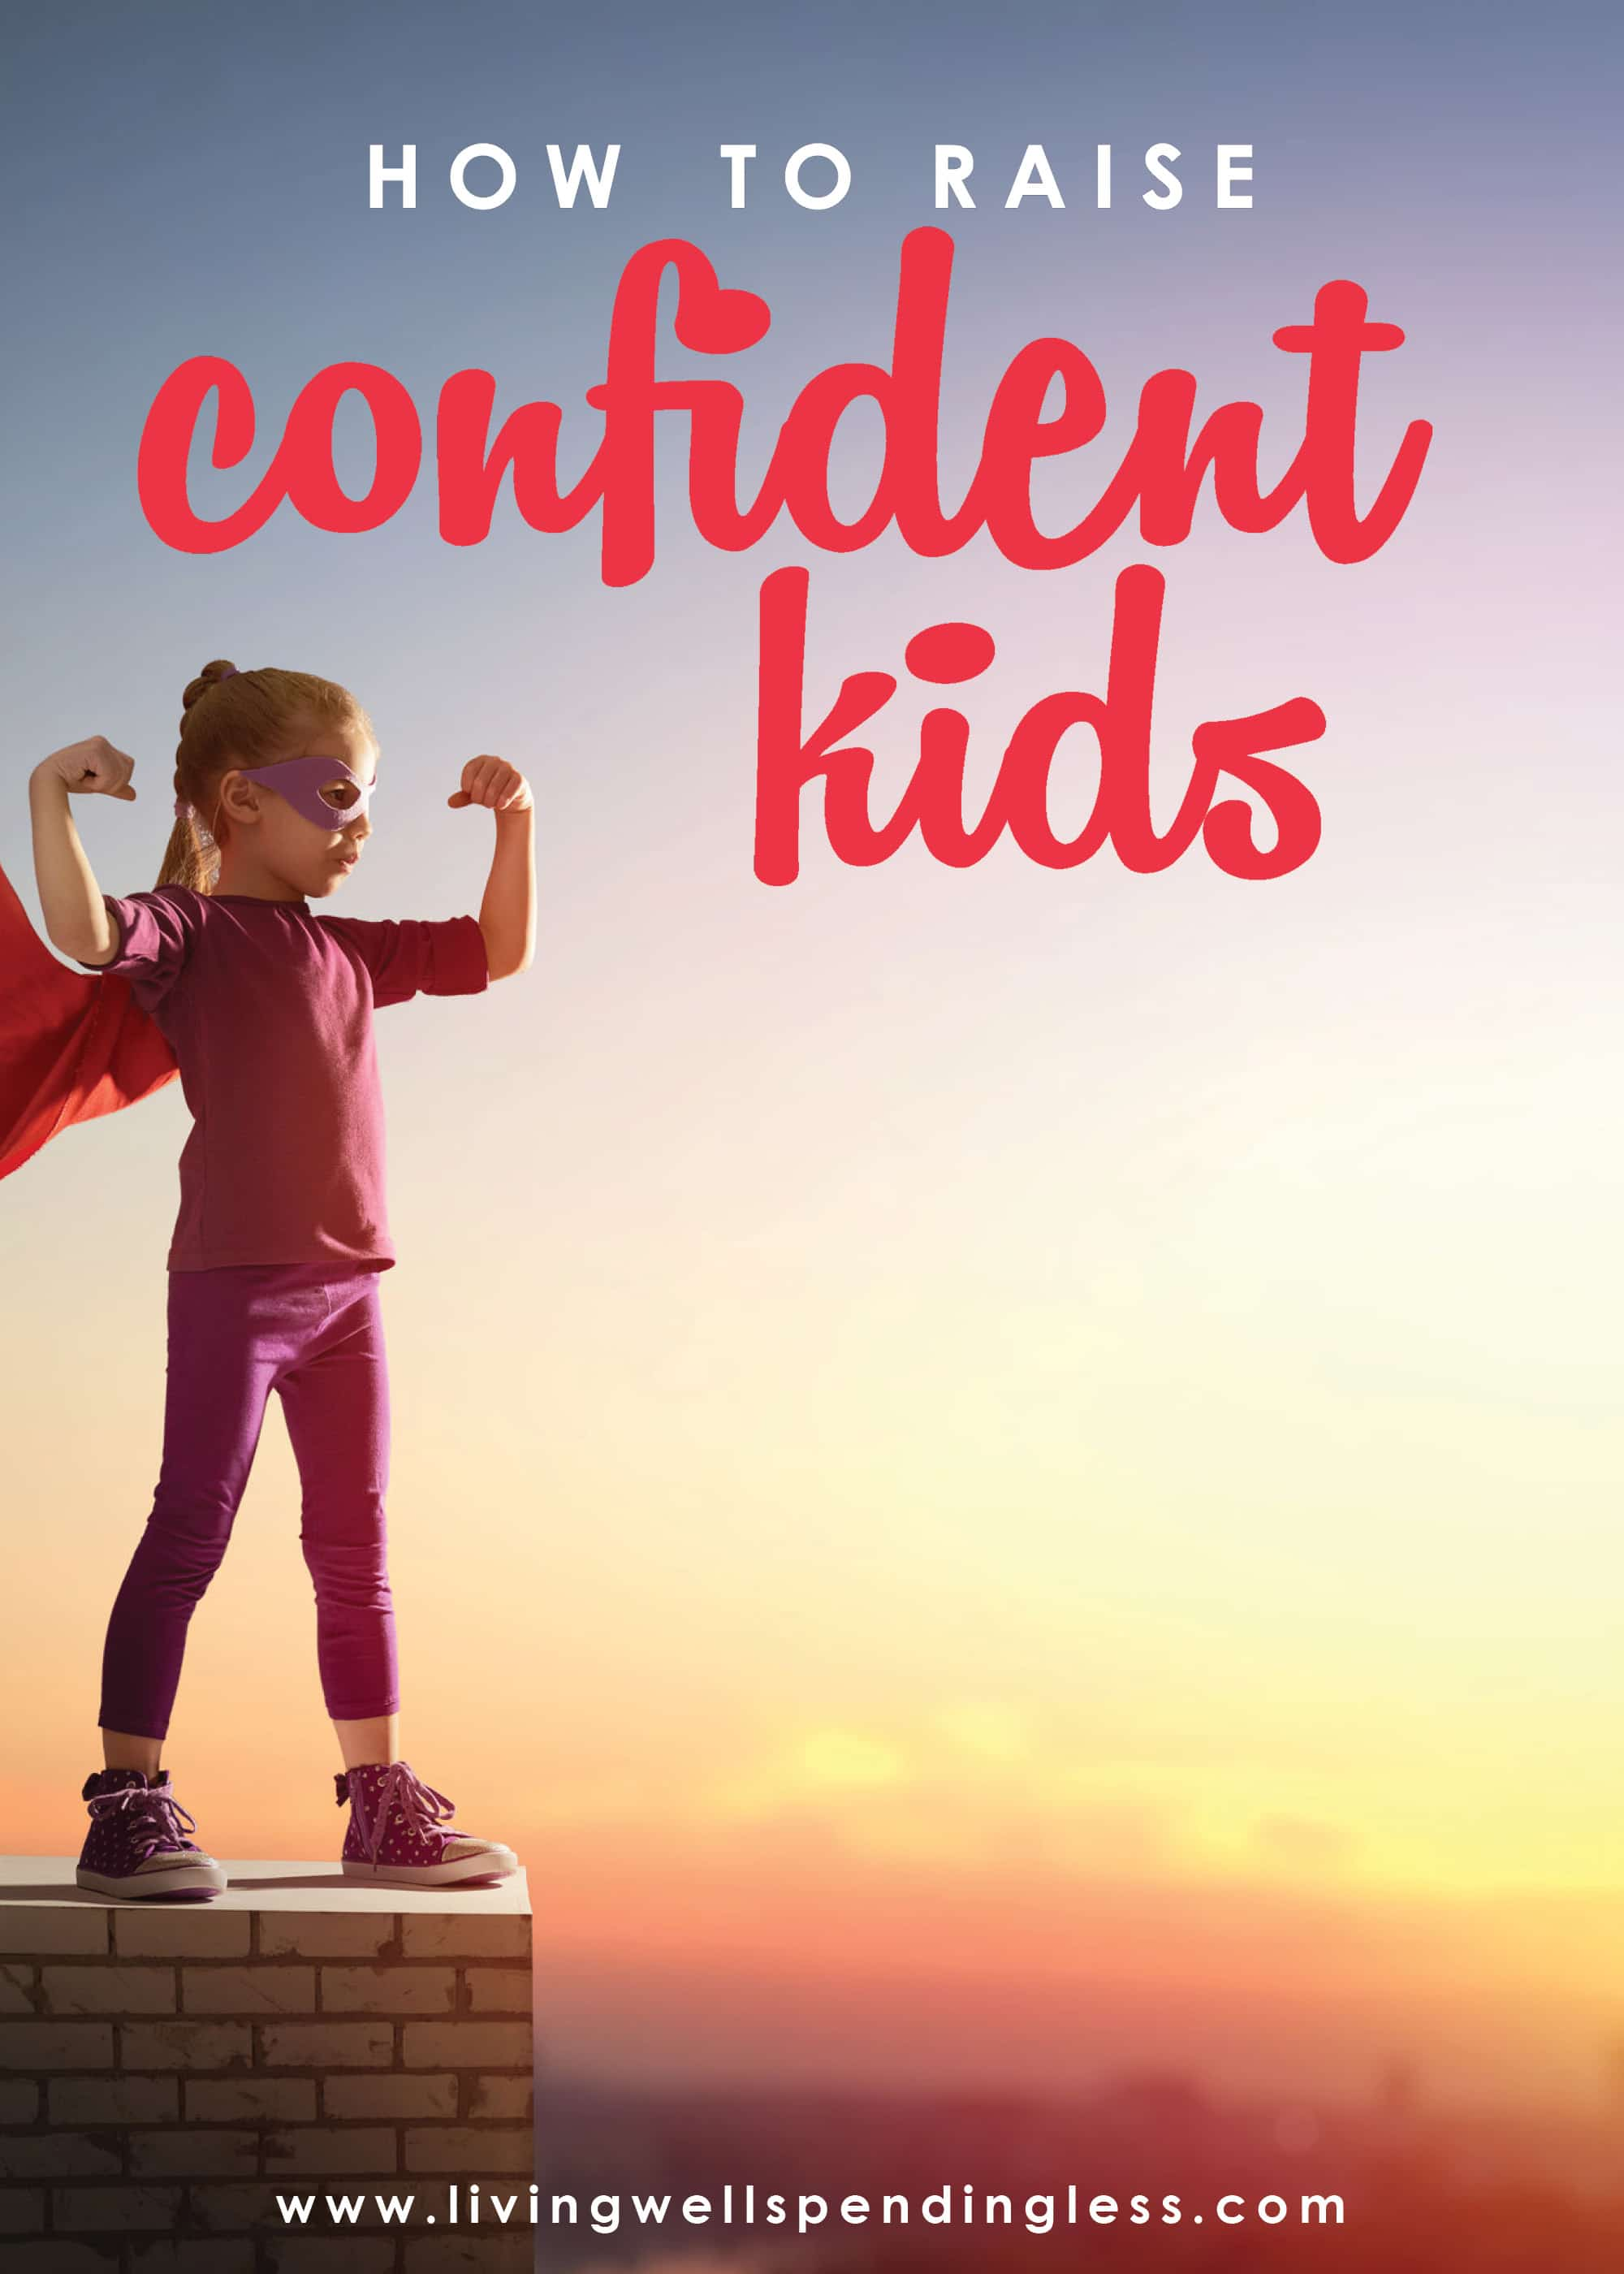 Here's how to raise confident kids.